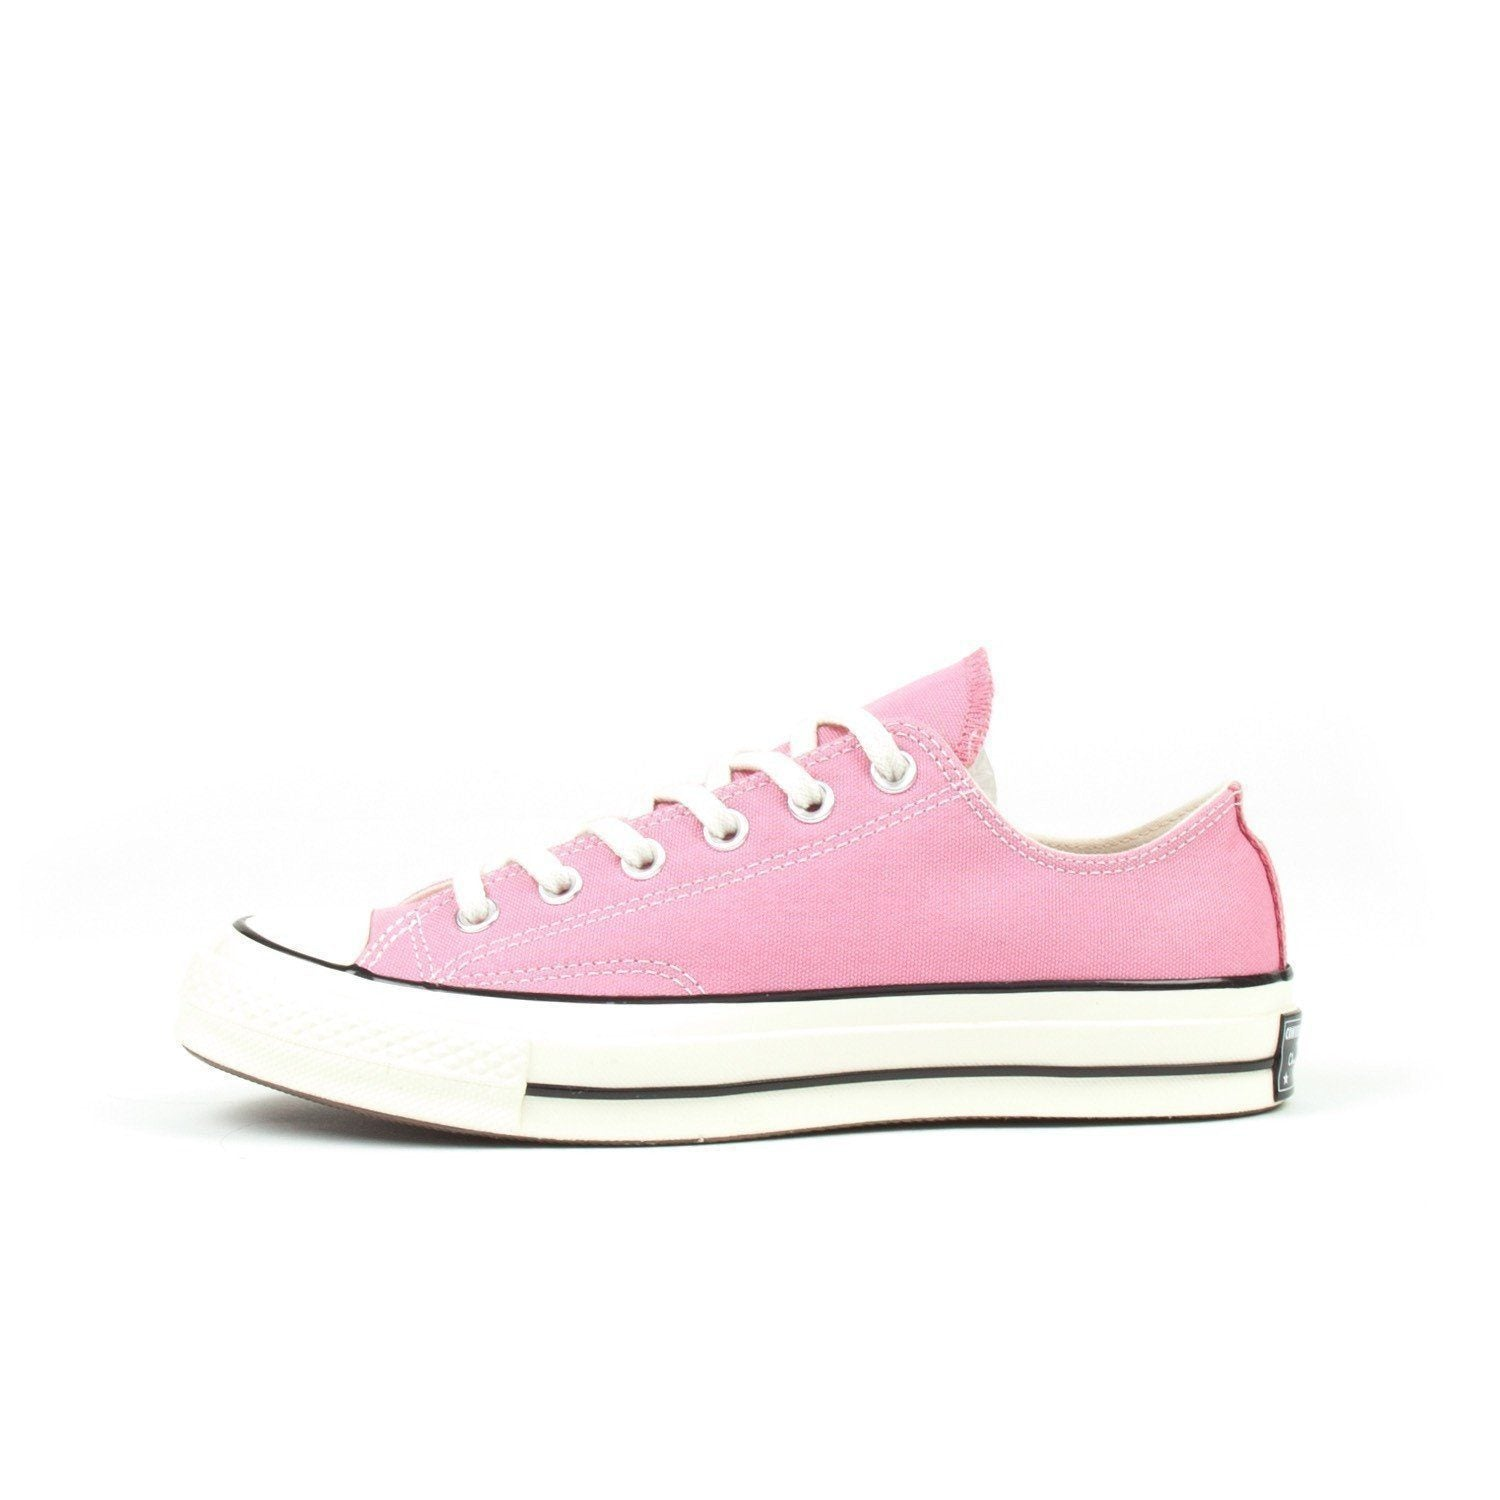 Converse Chuck Taylor All Star '70 Ox Trainers - Chateau Rose/Egret/Black - UK 11 HrIZpLYxk4